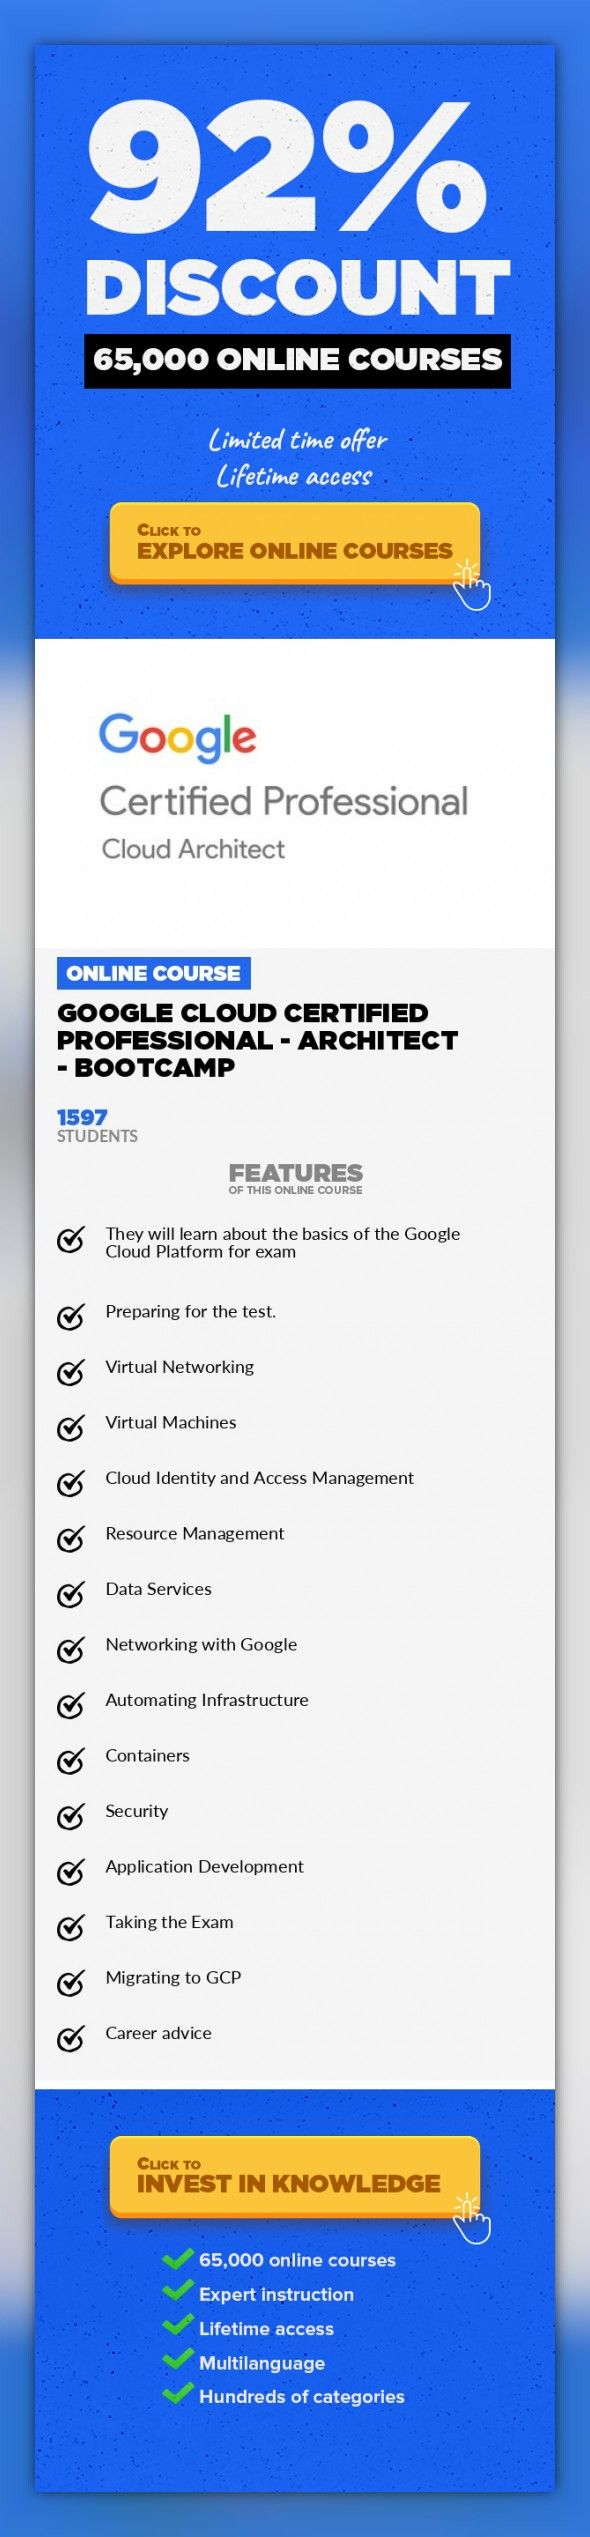 Google Cloud Certified Professional Architect Bootcamp It